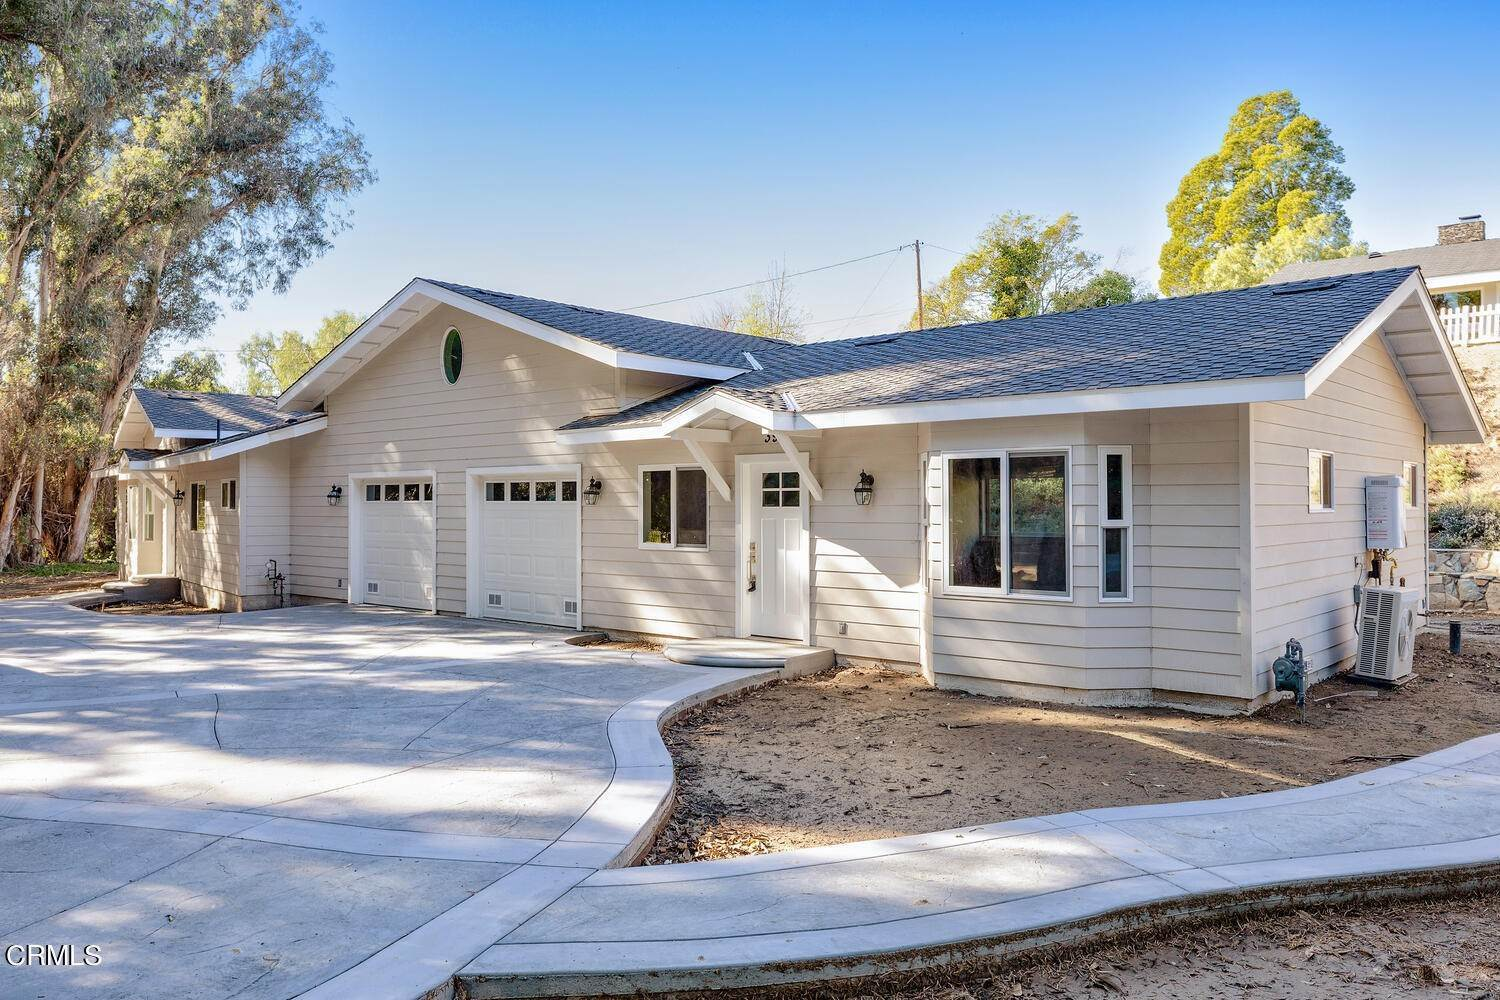 29. Single Family Homes for Sale at 39 - 41 Ramona Place Camarillo, California 93010 United States